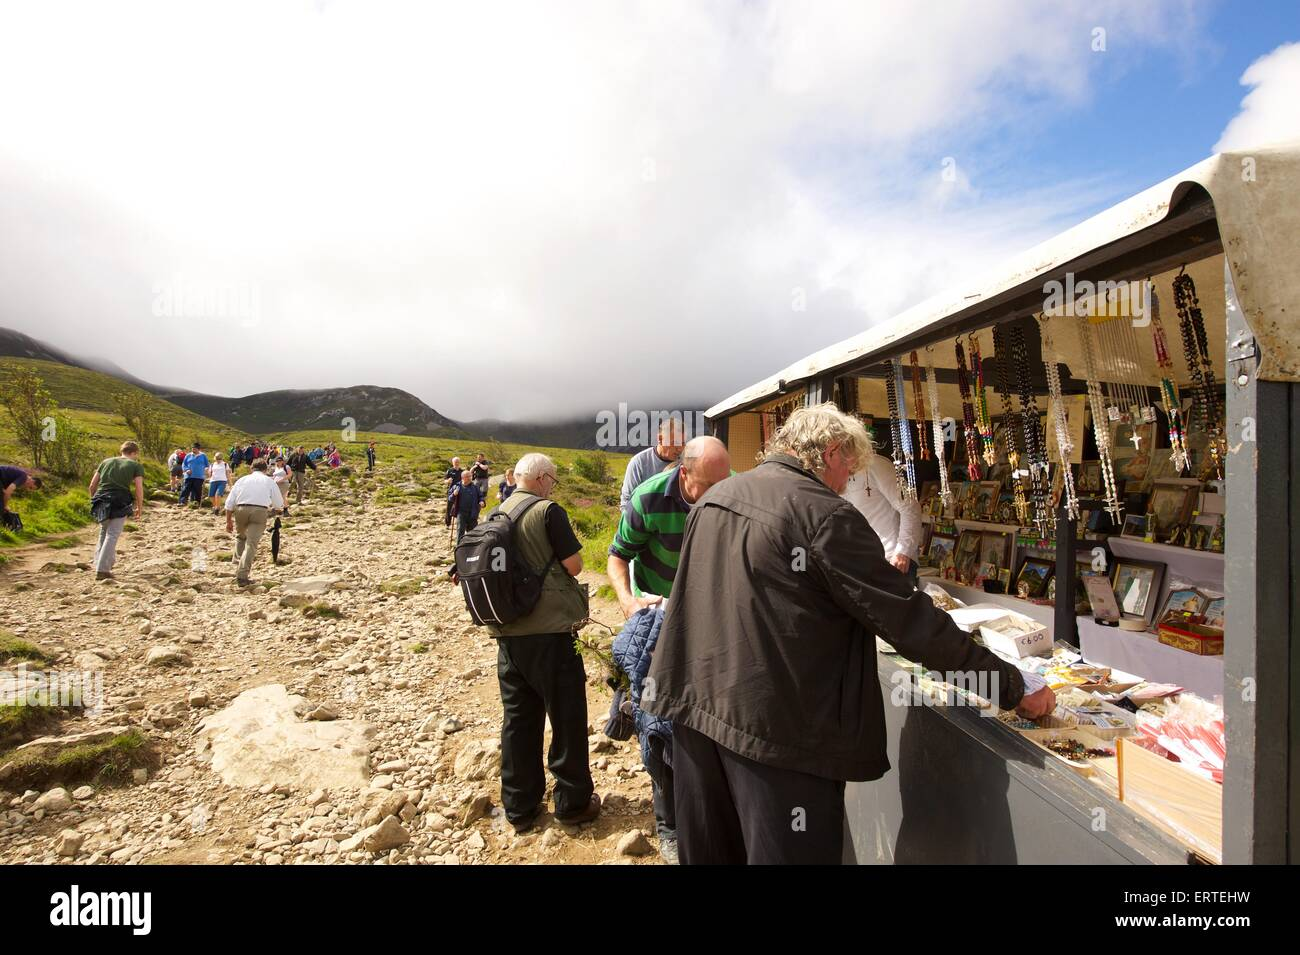 People buying religious items before climbing Croagh Patrick a holy mountain in County Mayo in the West of Ireland. - Stock Image